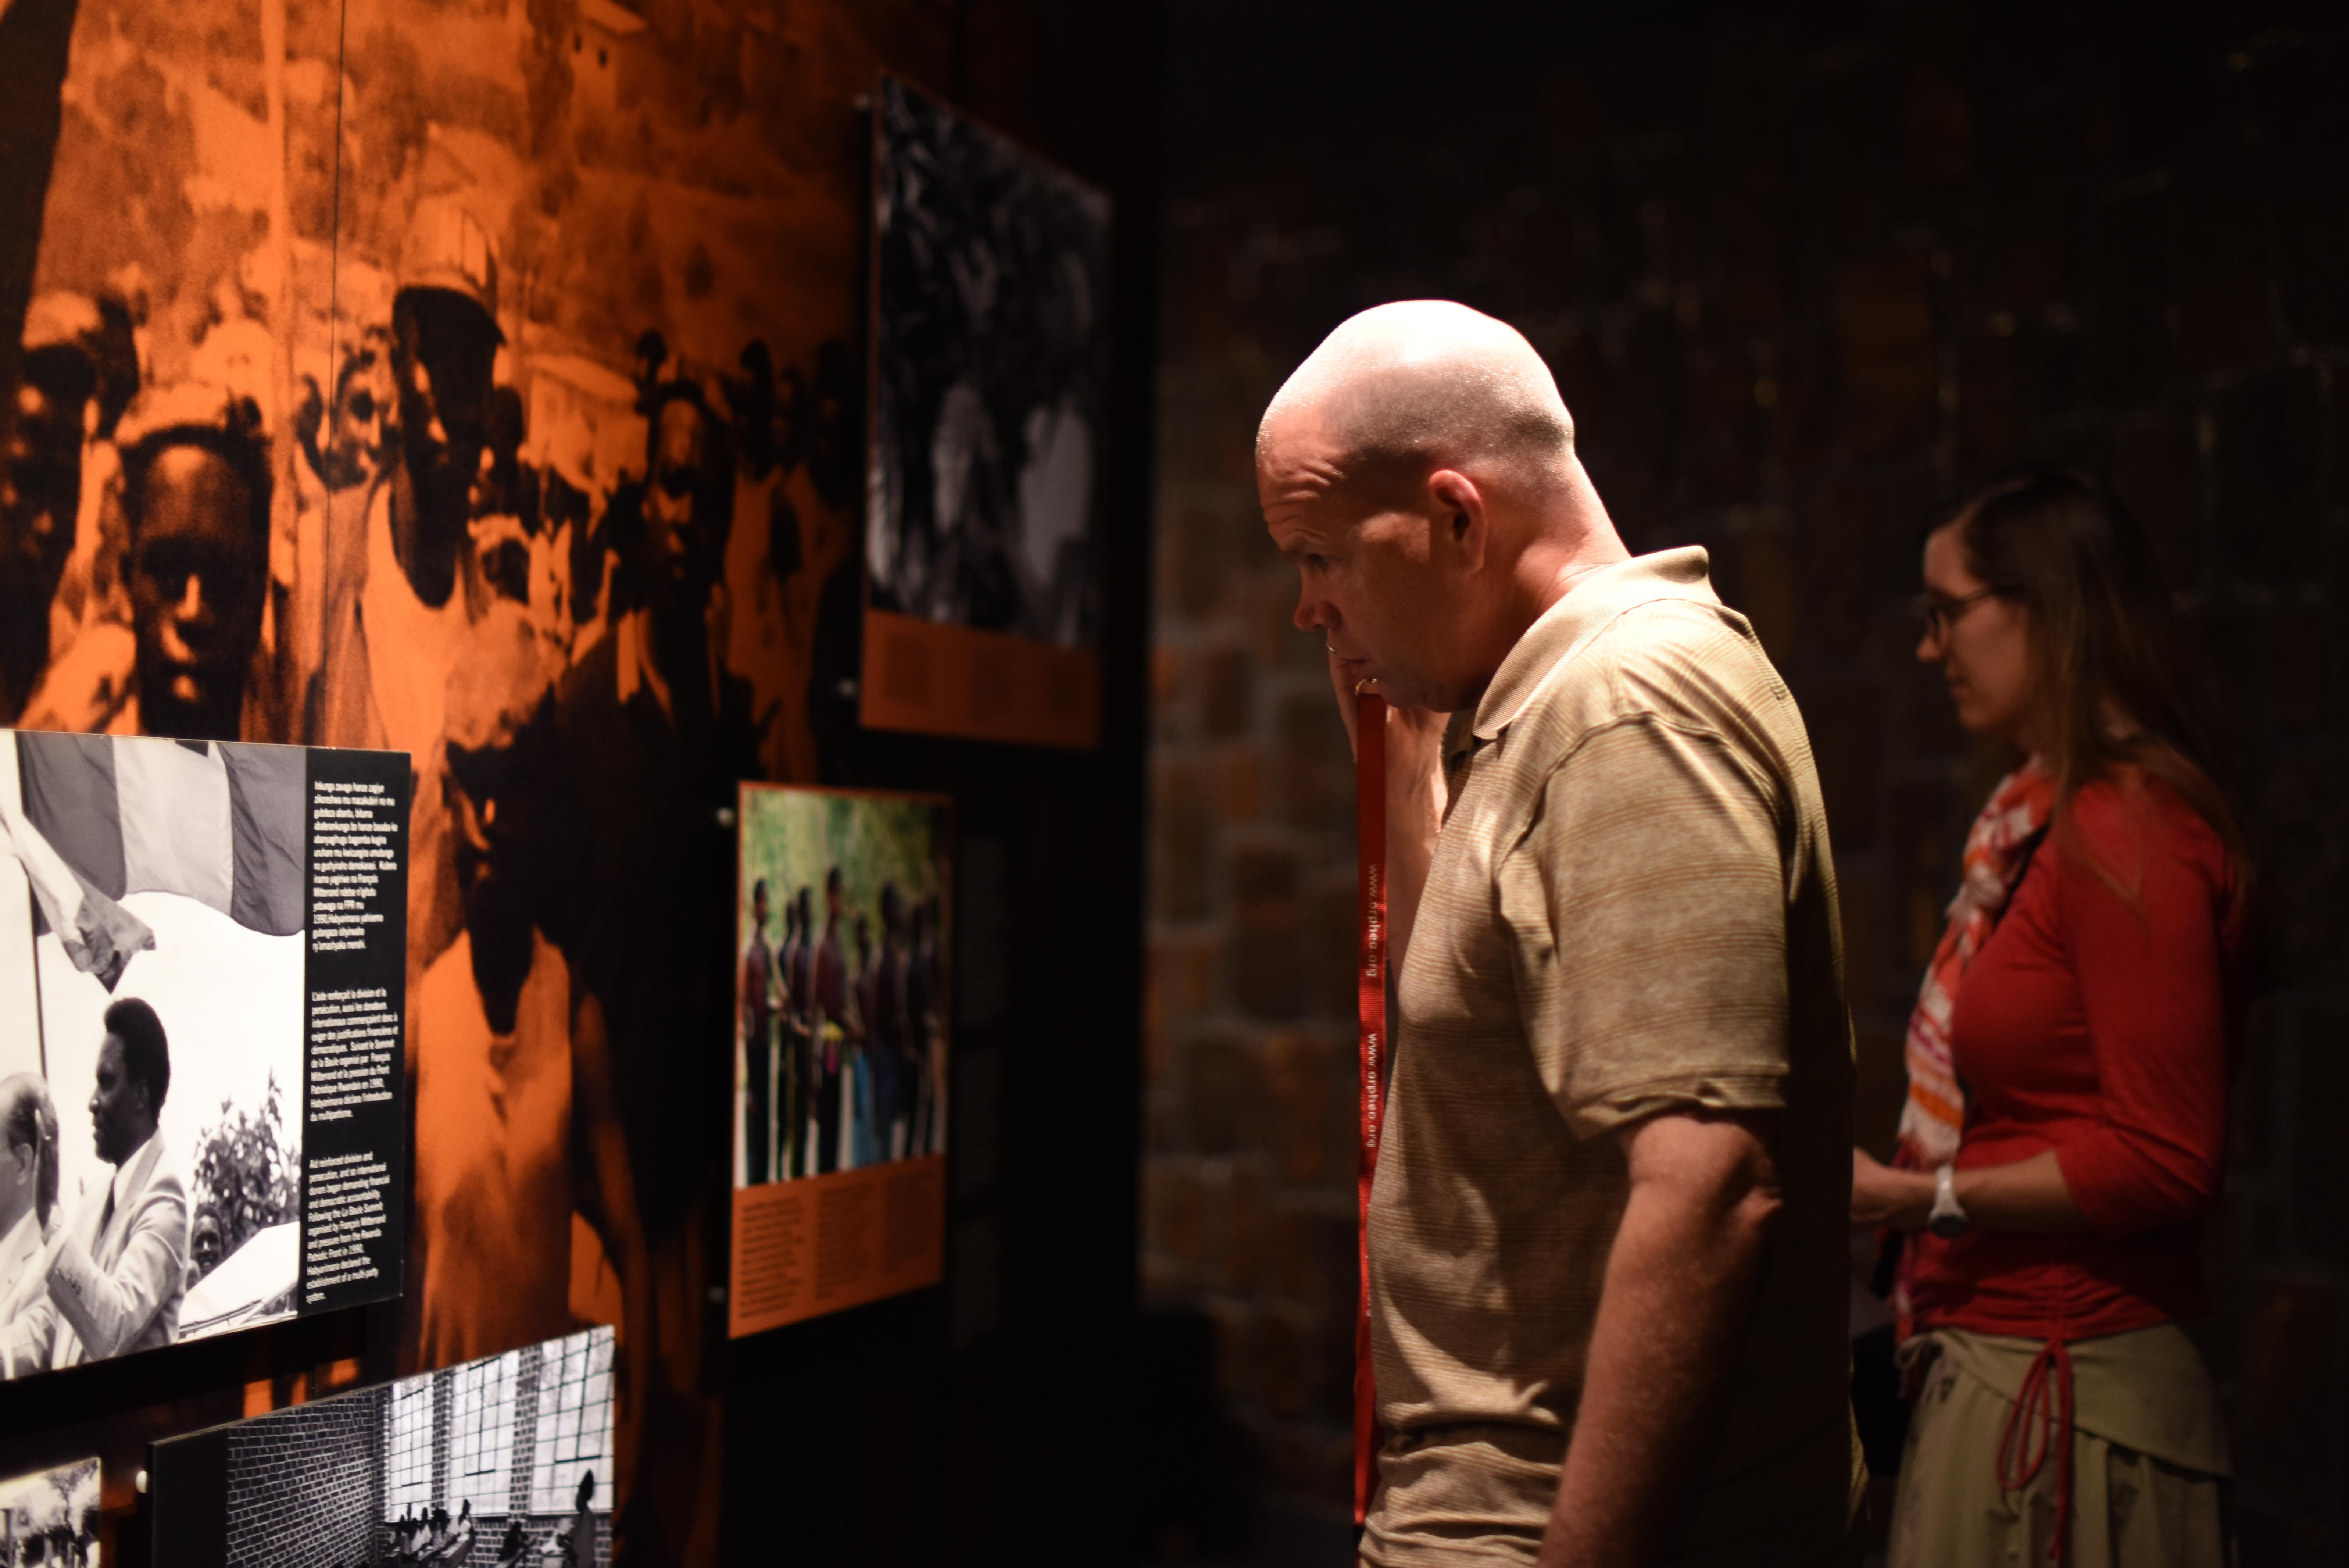 U.S. Navy Lt. Steven Hunt and U.S. Marine Corps Maj. Bevin Keen from Combined Joint Task Force-Horn of Africa listen to introductions at the Genocide Memorial Museum in Kigali, Rwanda, Dec. 16, 2015. The museum exhibits photos, media and artwork related to the 1994 genocide against the Tutsi in Rwanda. Survivors provided testimony to help tell the story for future generations. (U.S. Air Force photo by Staff Sgt. Victoria Sneed)